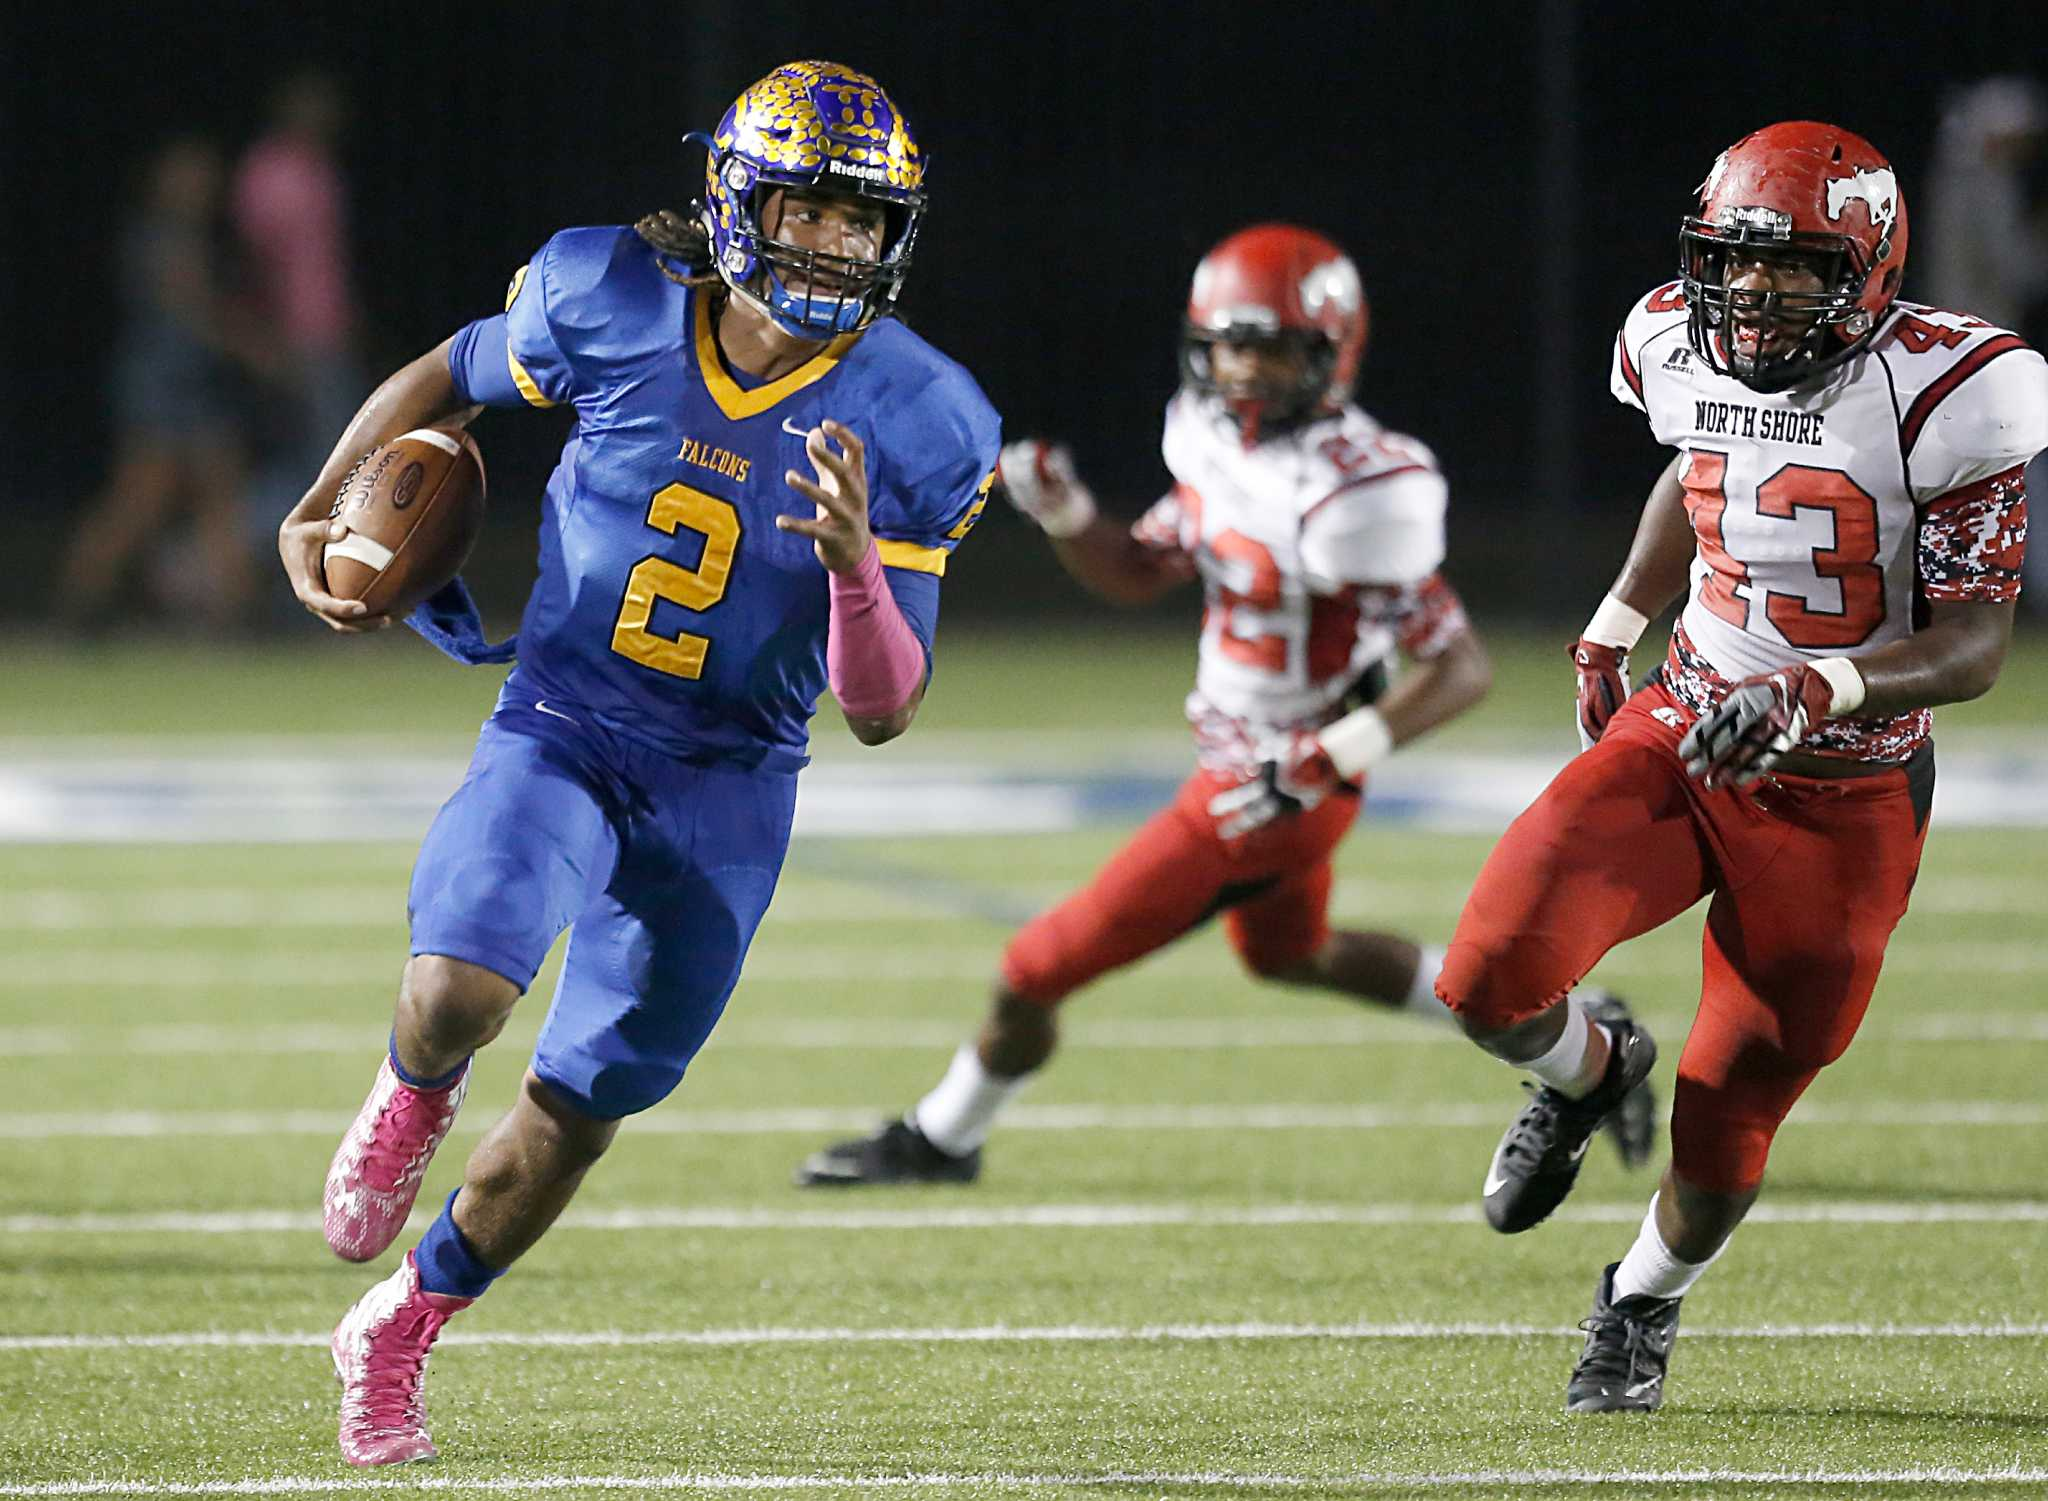 north shore weathers the storm against channelview